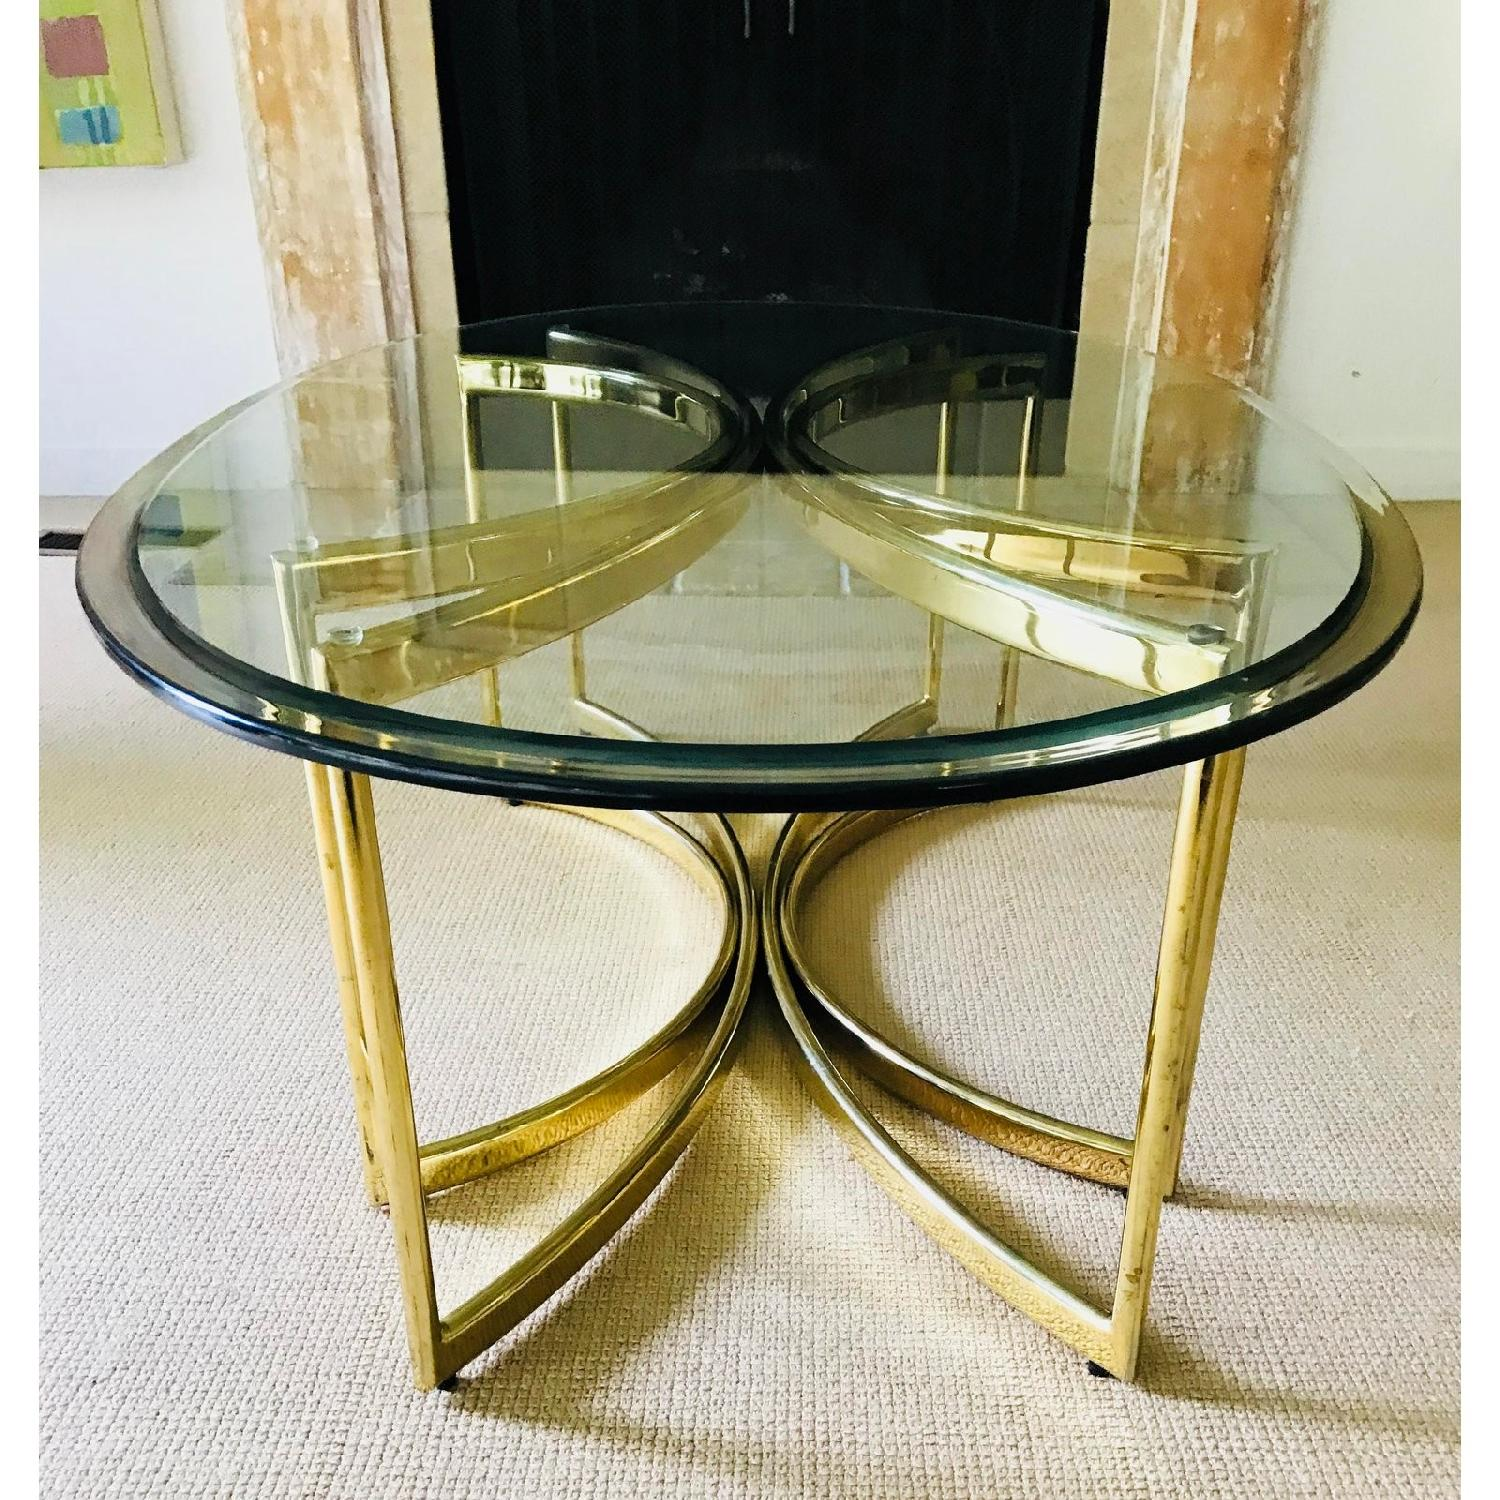 Vintage Brass & Glass Hollywood Regency Coffee Table